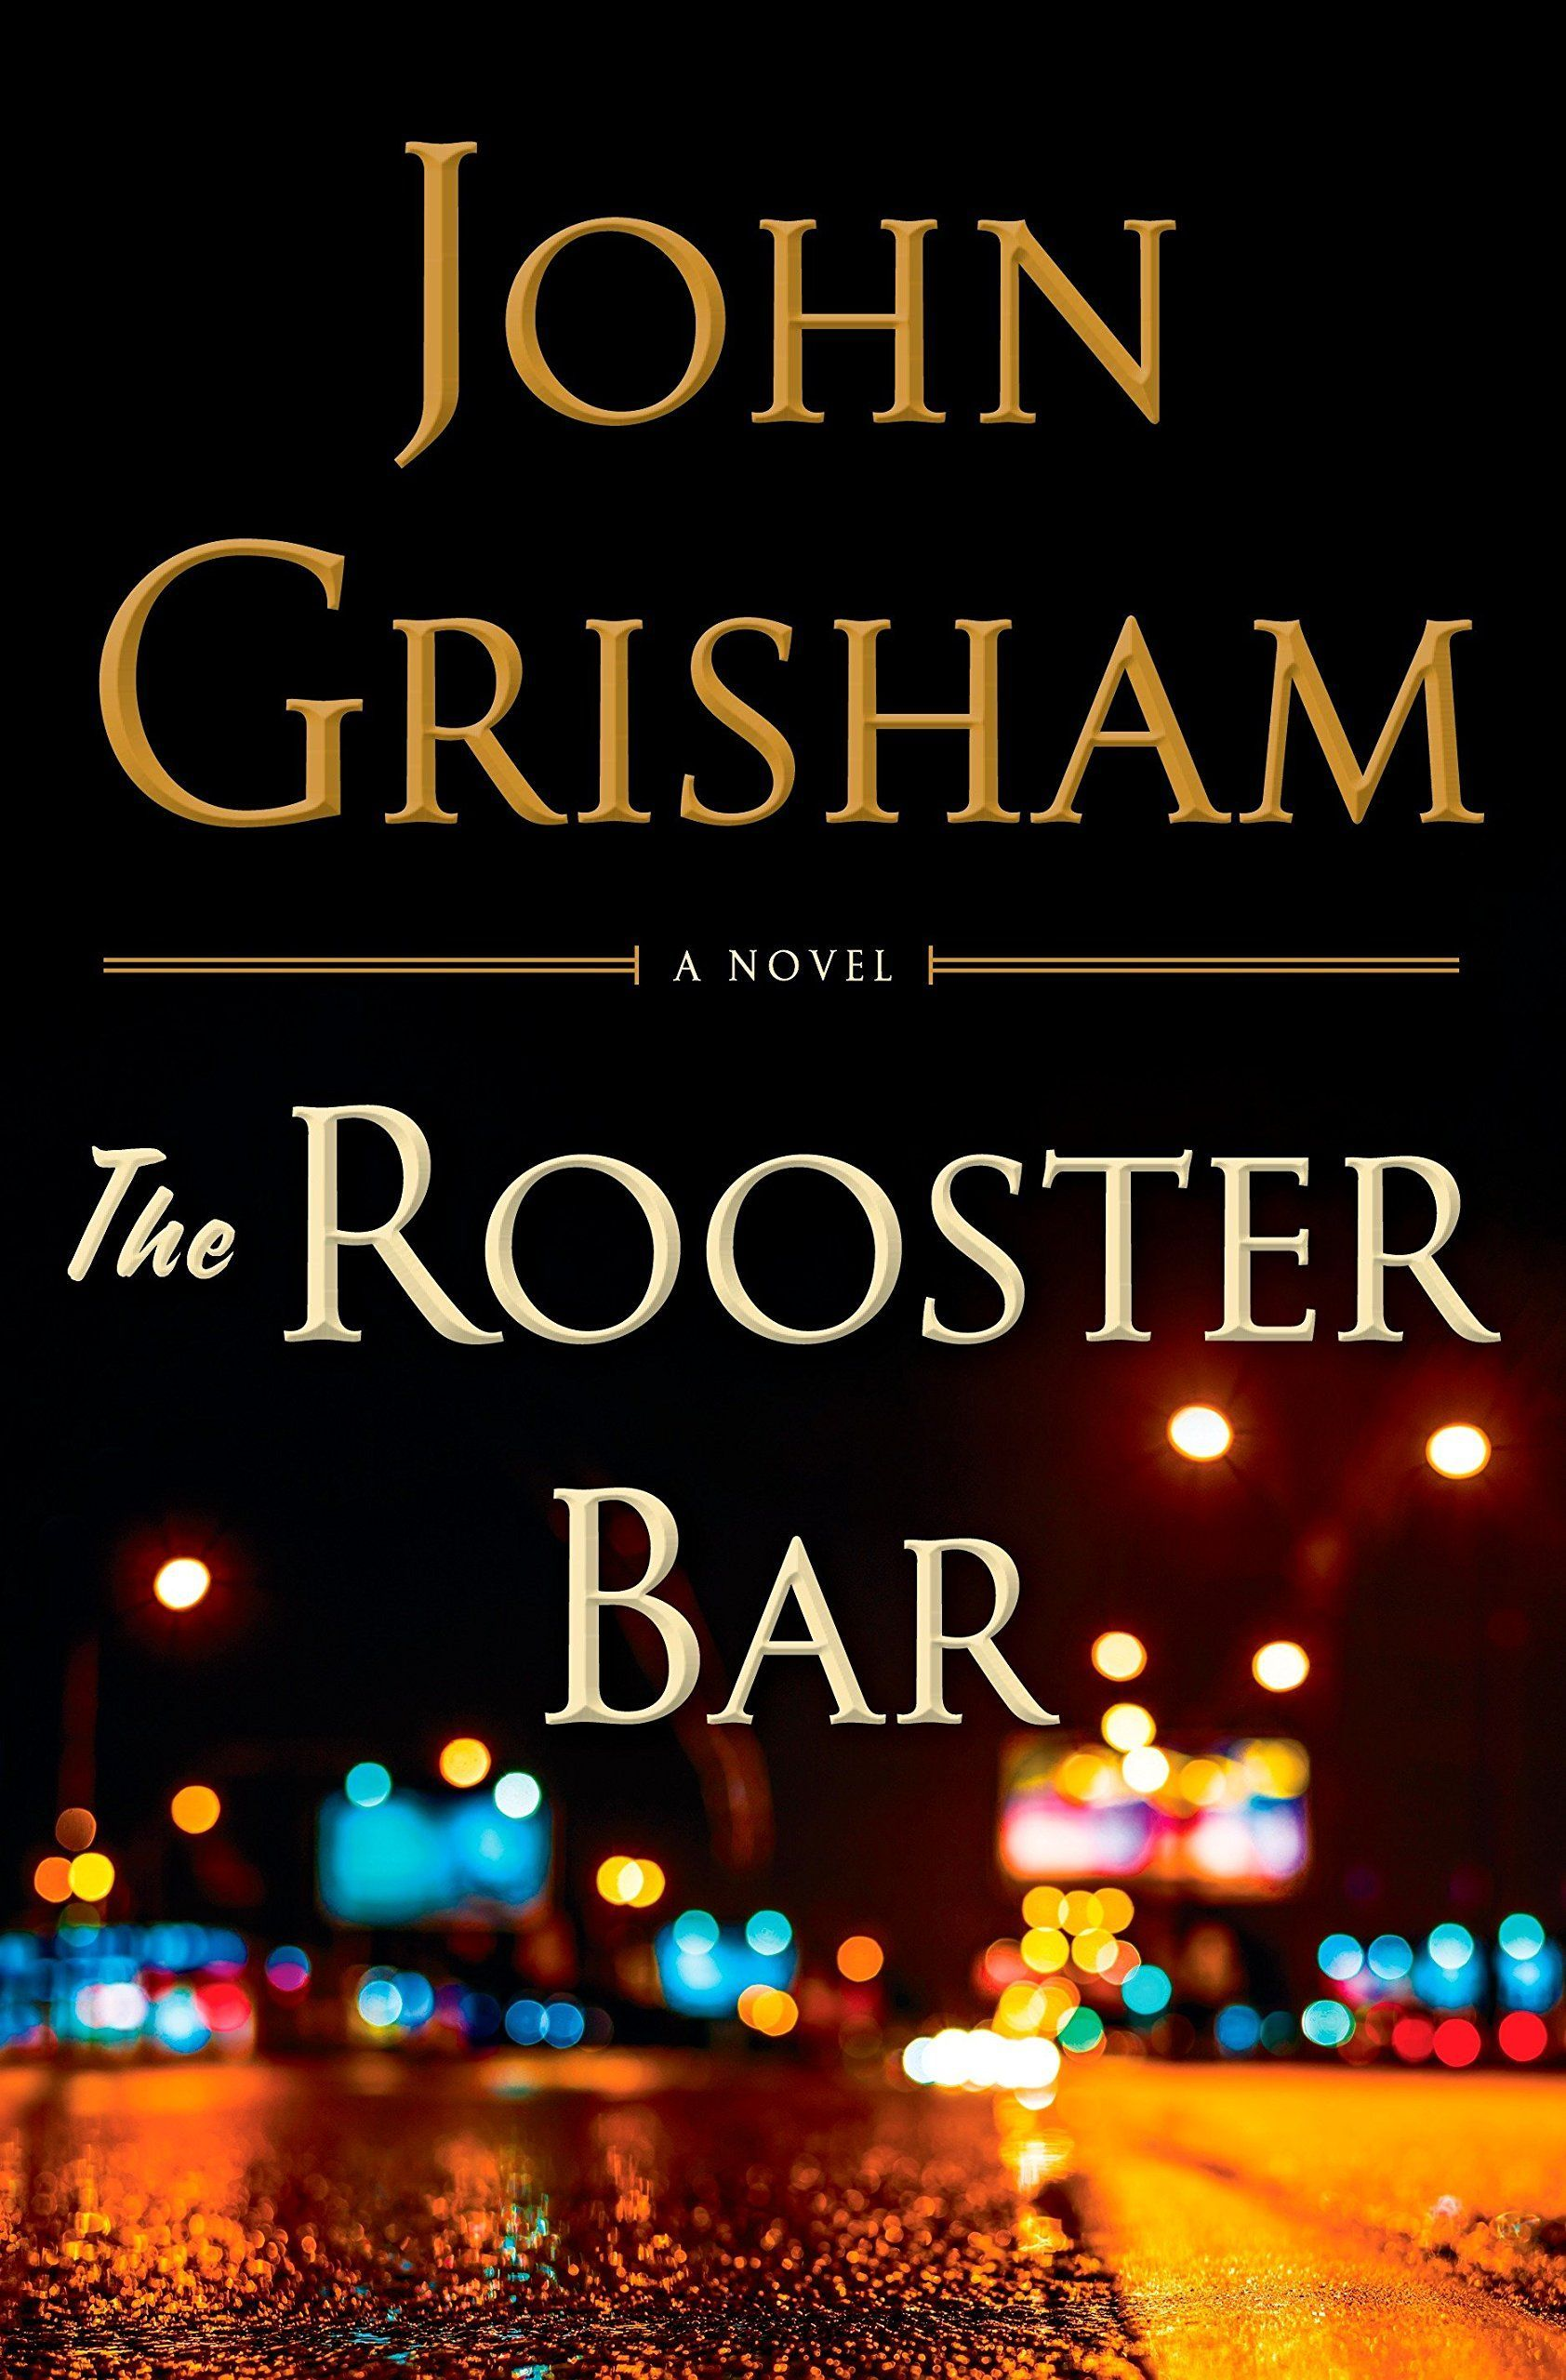 Download or read online the rooster bar by john grisham